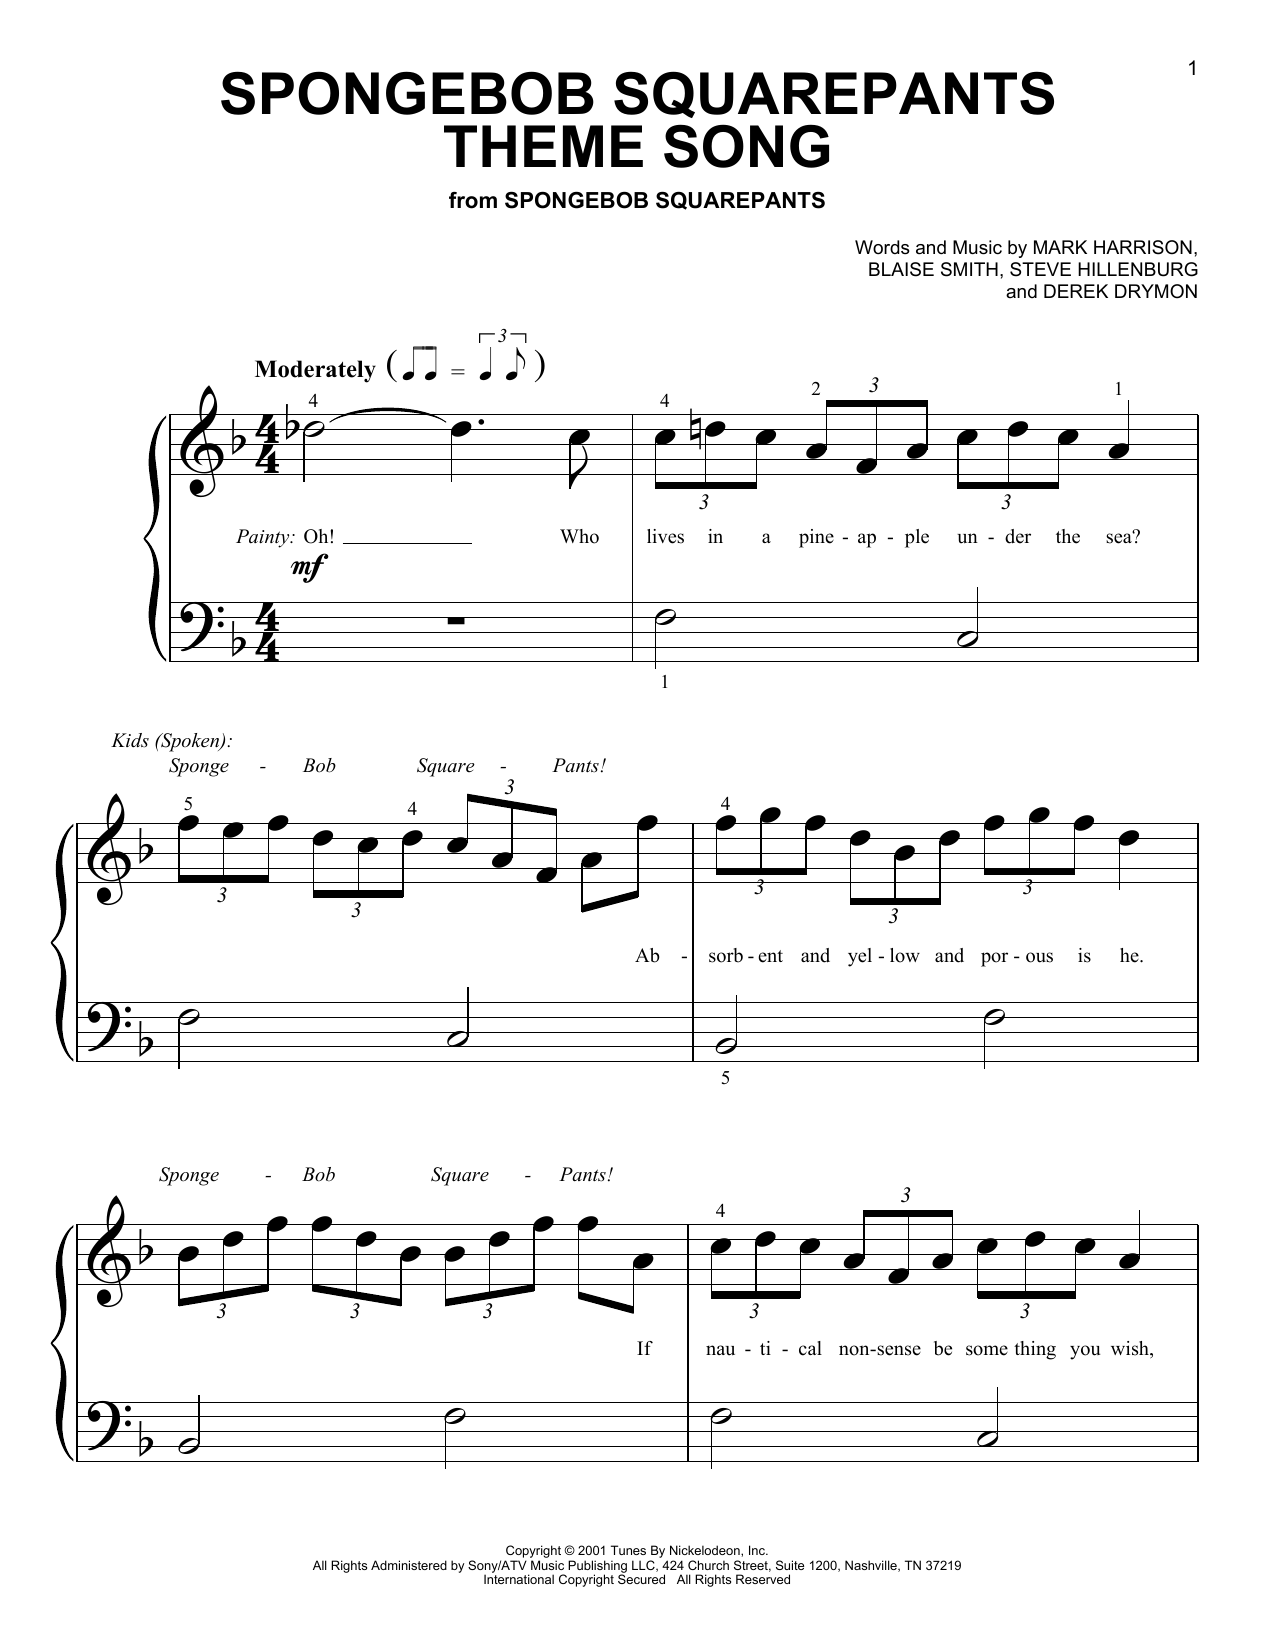 Spongebob squarepants theme song sheet music direct for Best piano house tracks